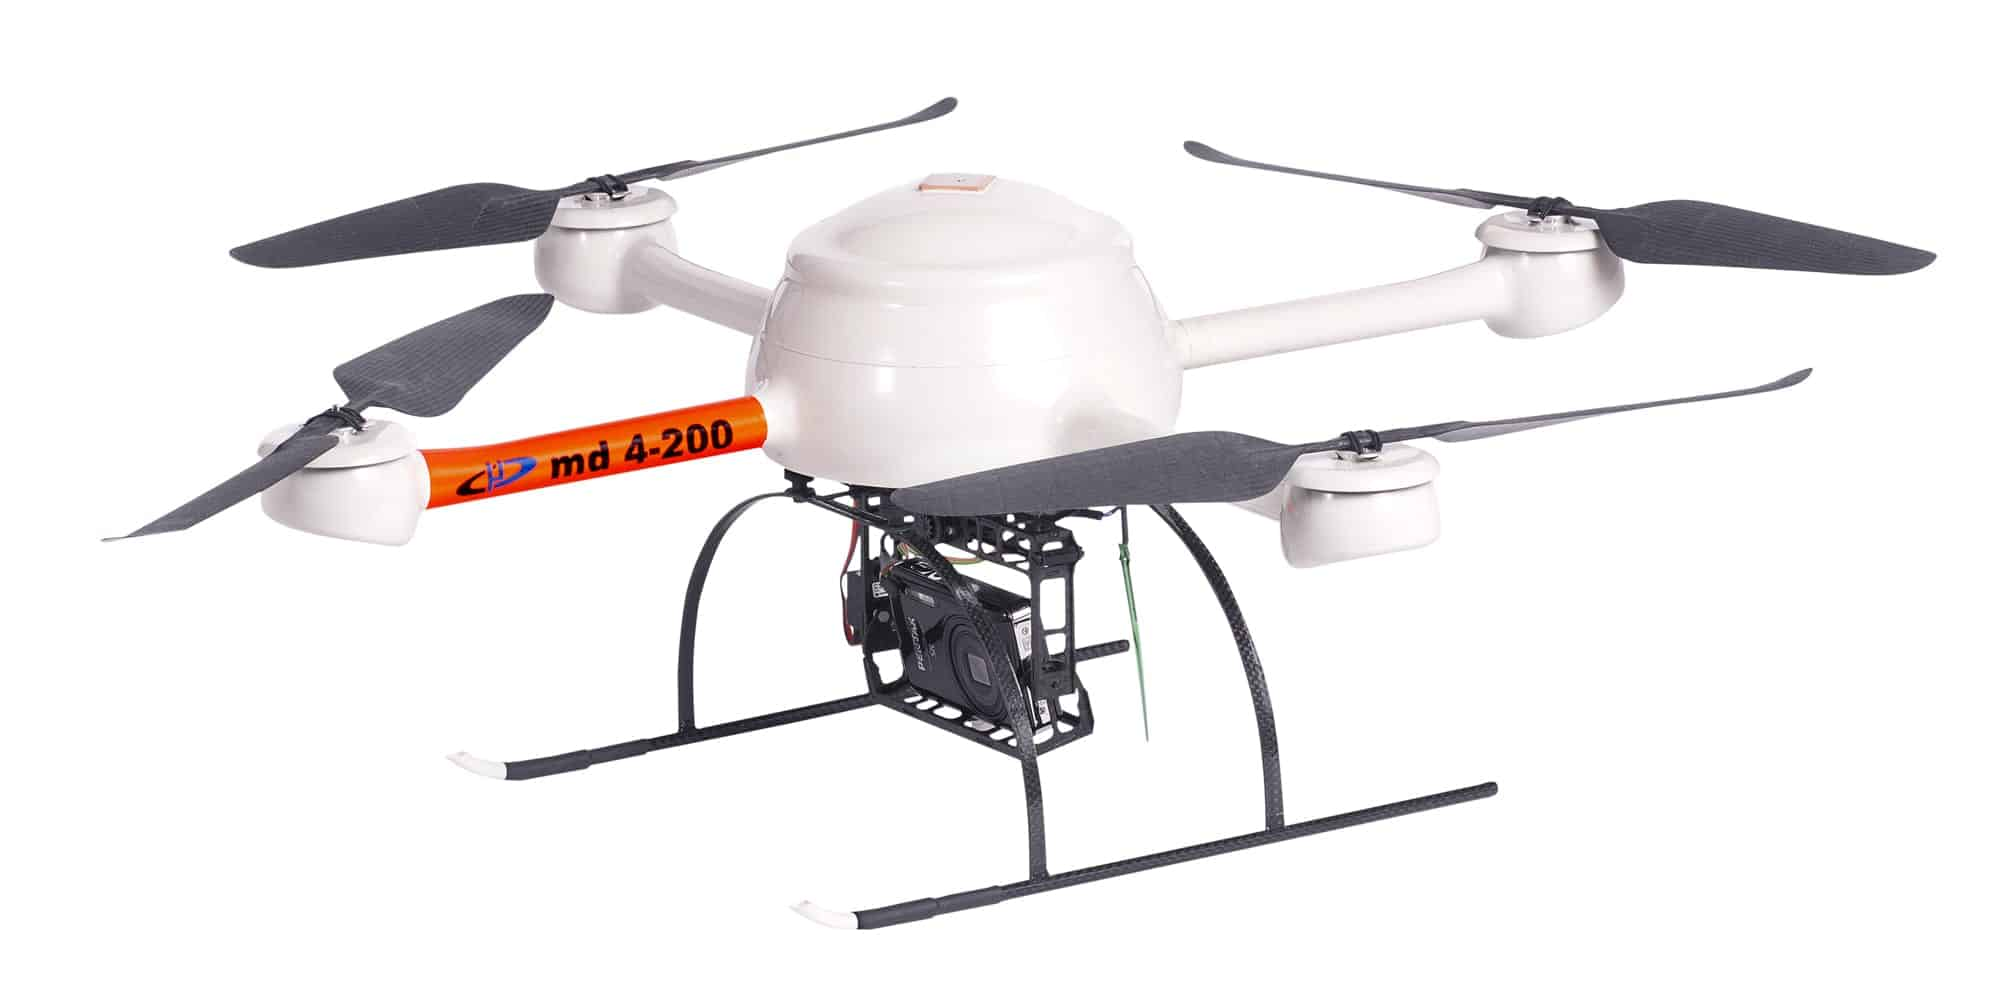 VectorP Unmanned Aerial Vehicle (ready to Fly) for sale  Unmanned Aircraft Vehicle